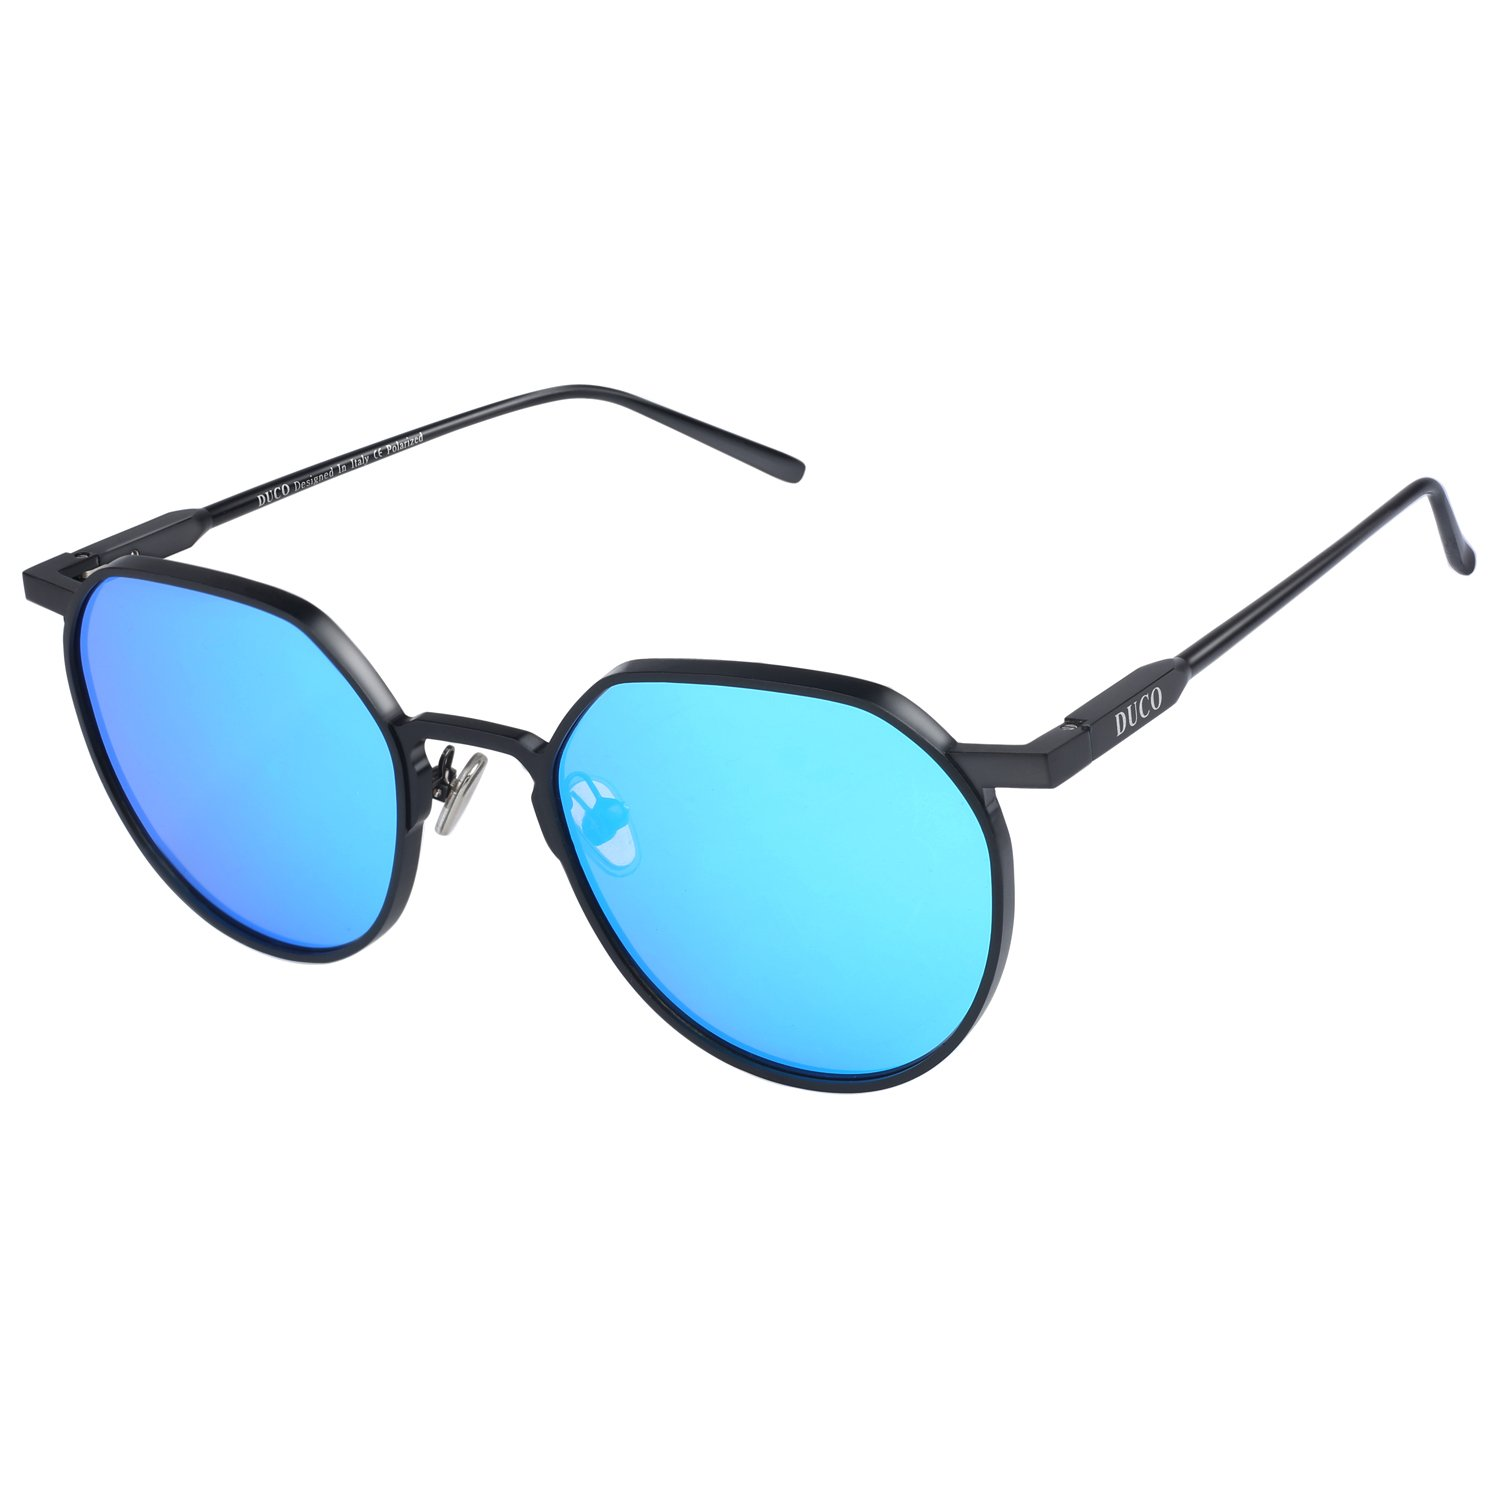 DUCO Unisex Fashion Polarized Sungalsses for Men Women with Metal Frame UV 400 Protection 8120 by Duco